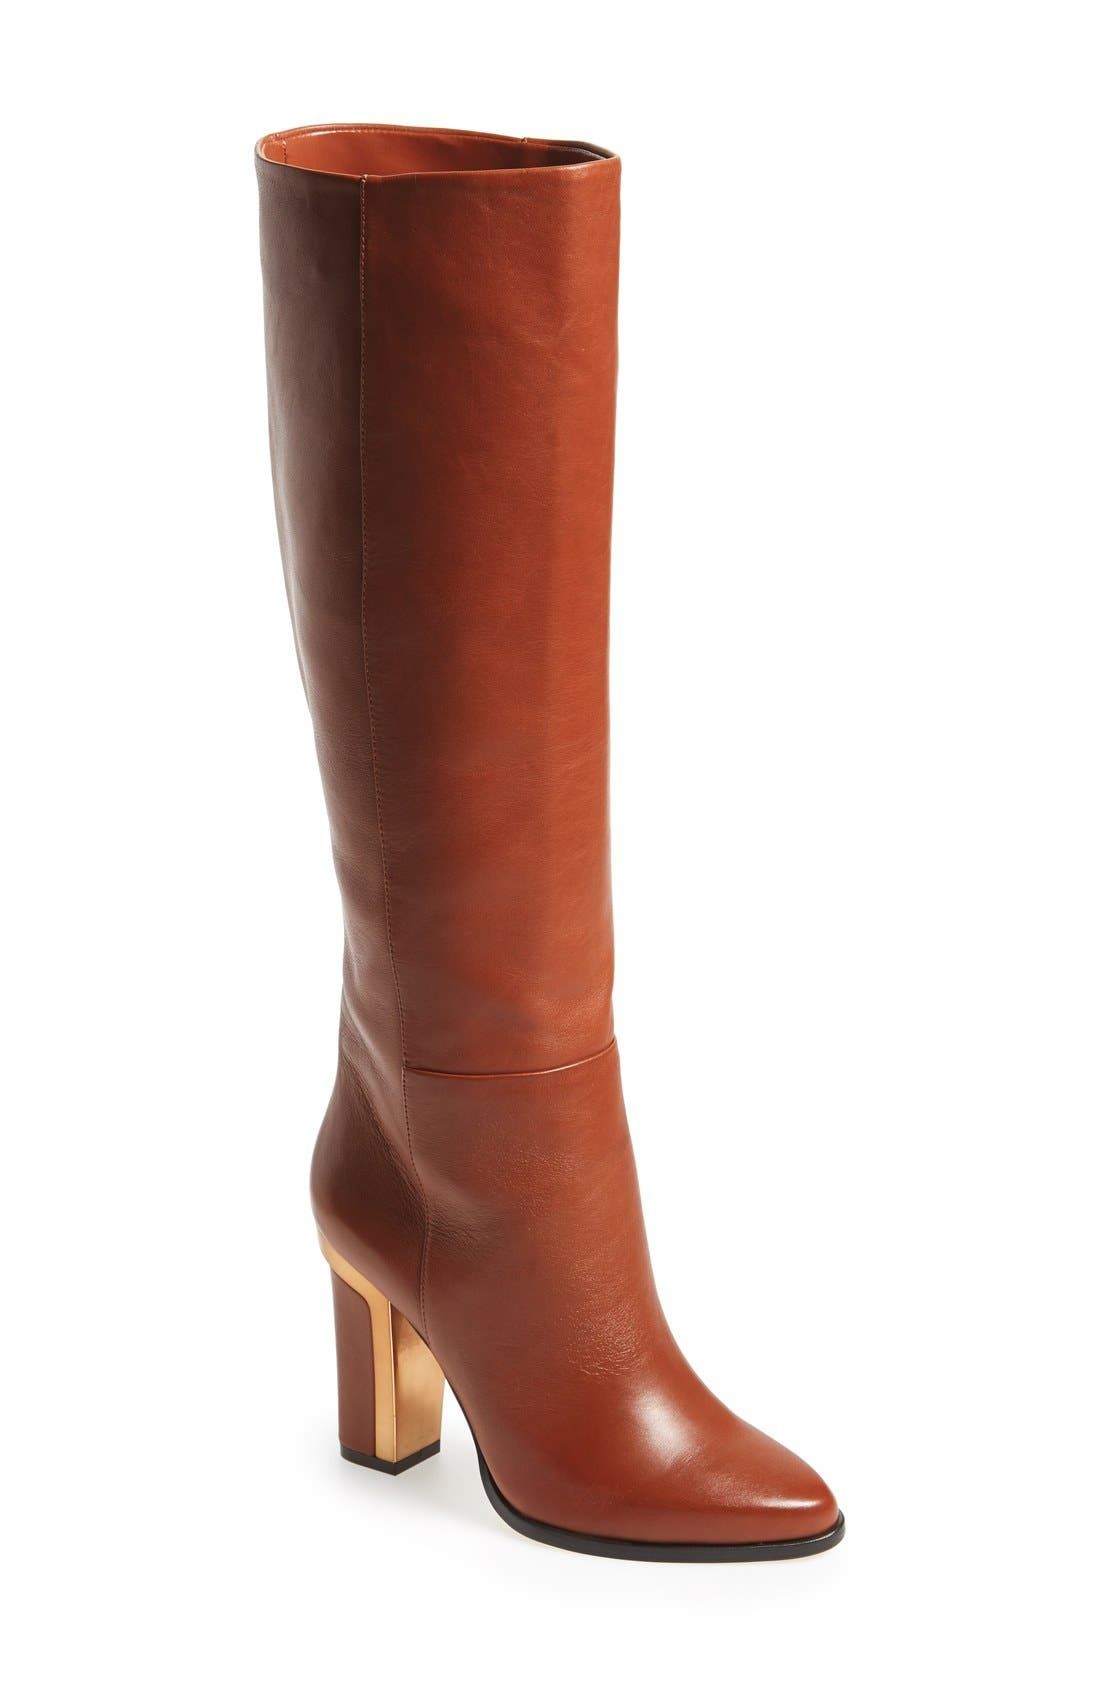 Main Image - BCBGMAXAZRIA 'Oak' Tall Boot (Women)